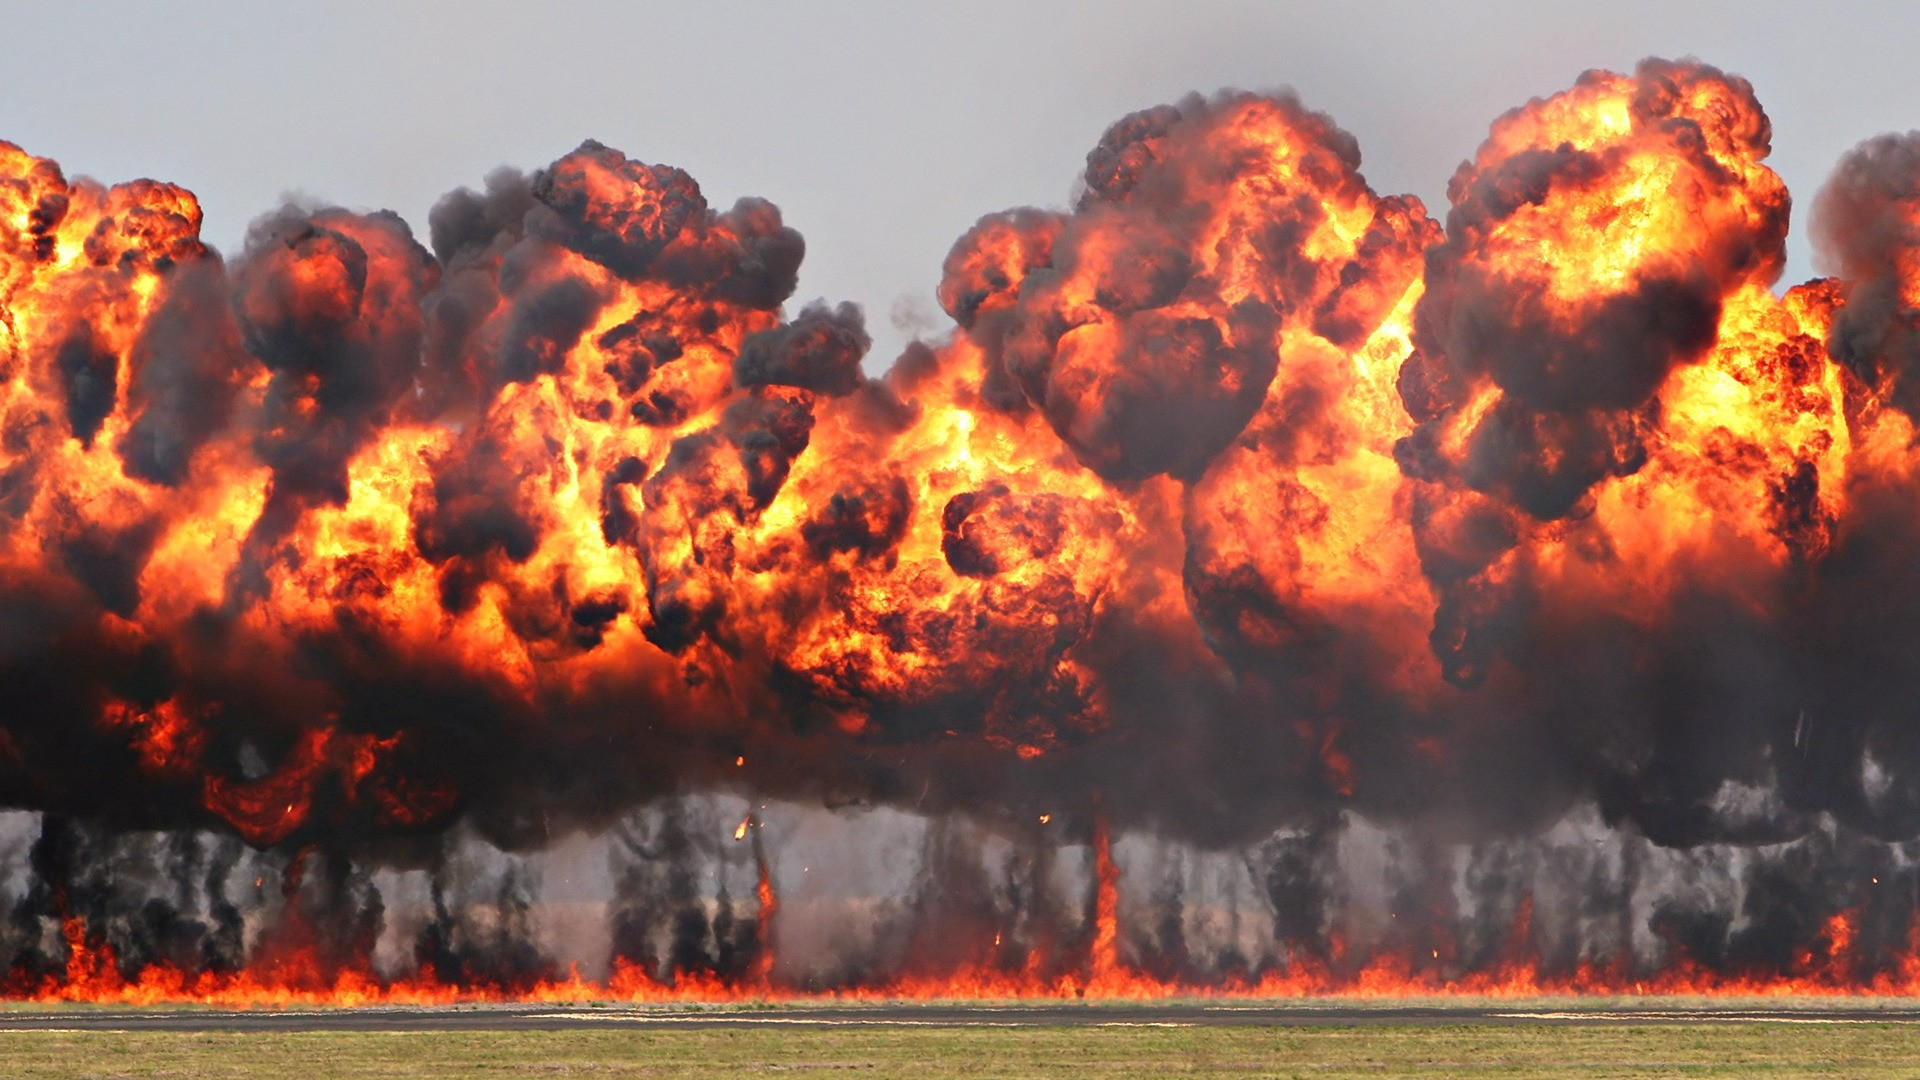 Explosion Picture